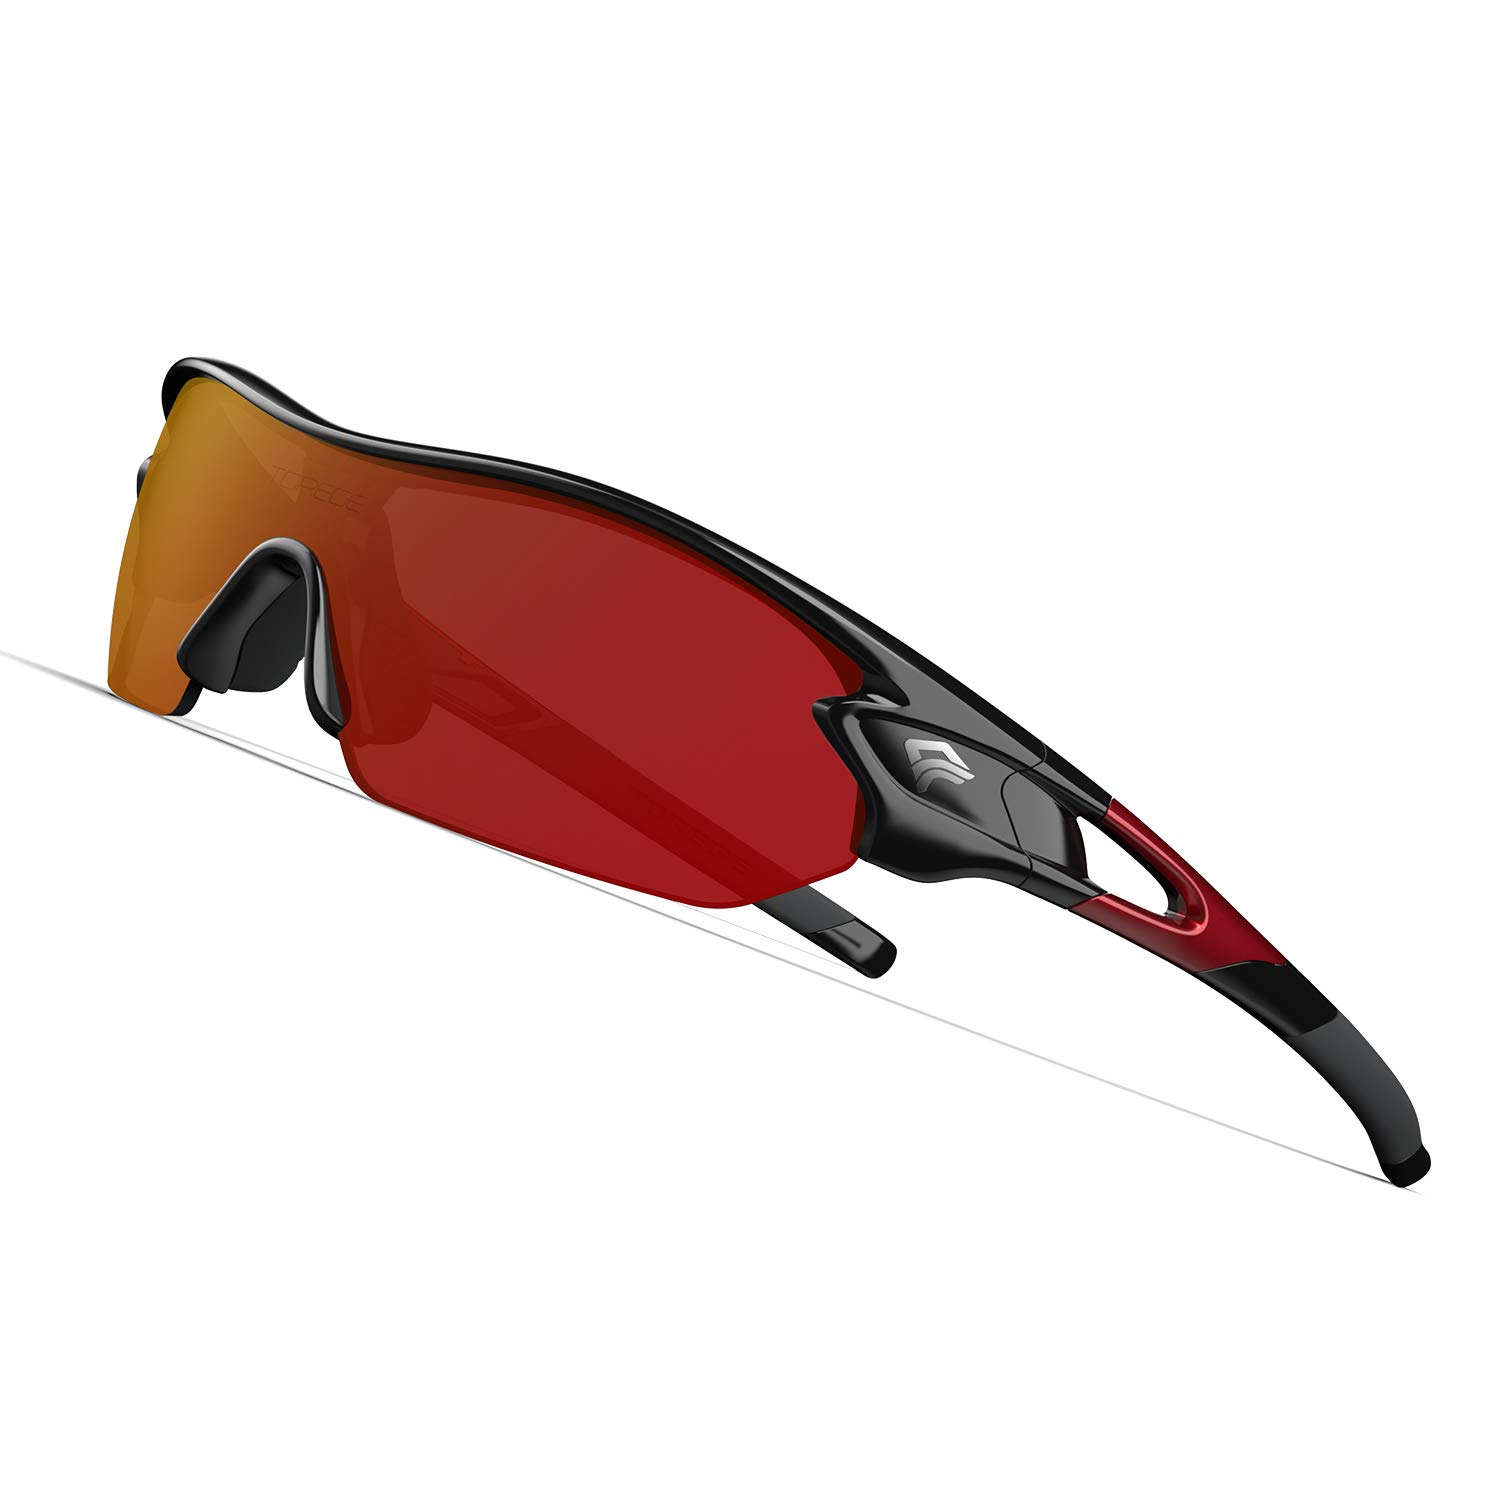 TOREGE Polarized Sports Sunglasses with 3 Interchangeable Lenes for Men Women Cycling Running Driving Fishing Golf Baseball Glasses TR002 Upgrade(Black Red &Red Lens) by TOREGE